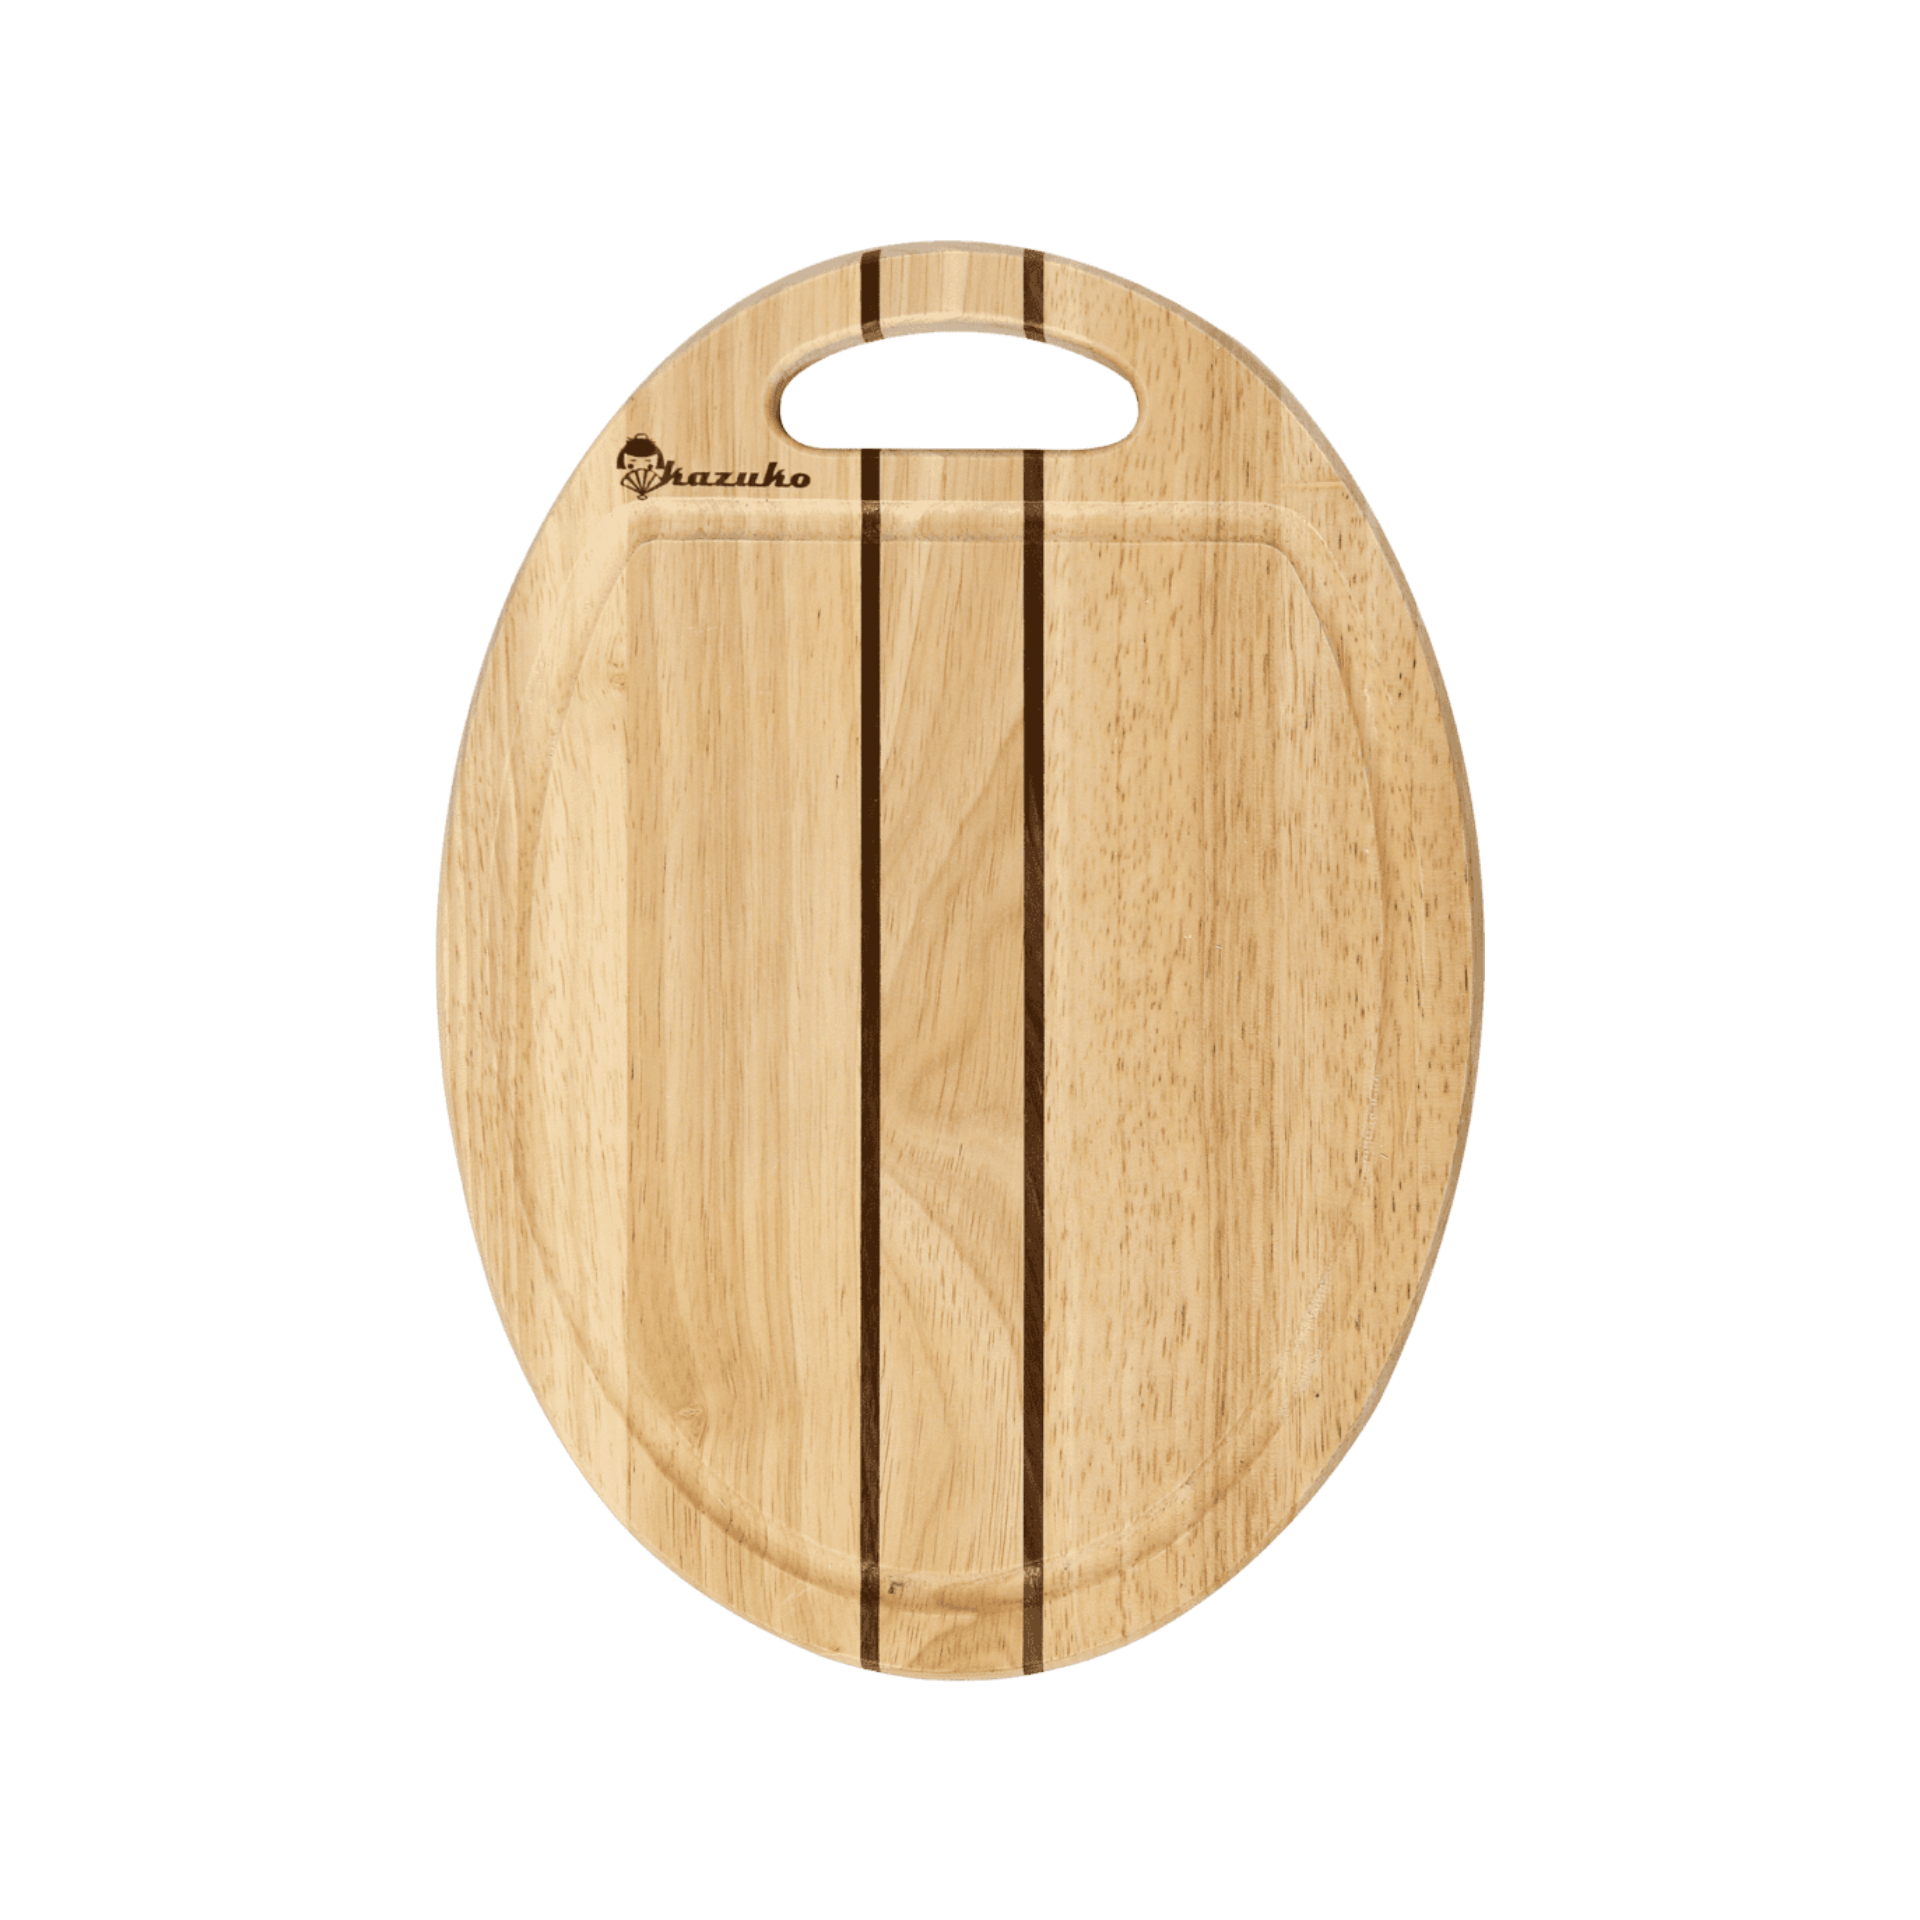 Oval striped cutting boards with grooves